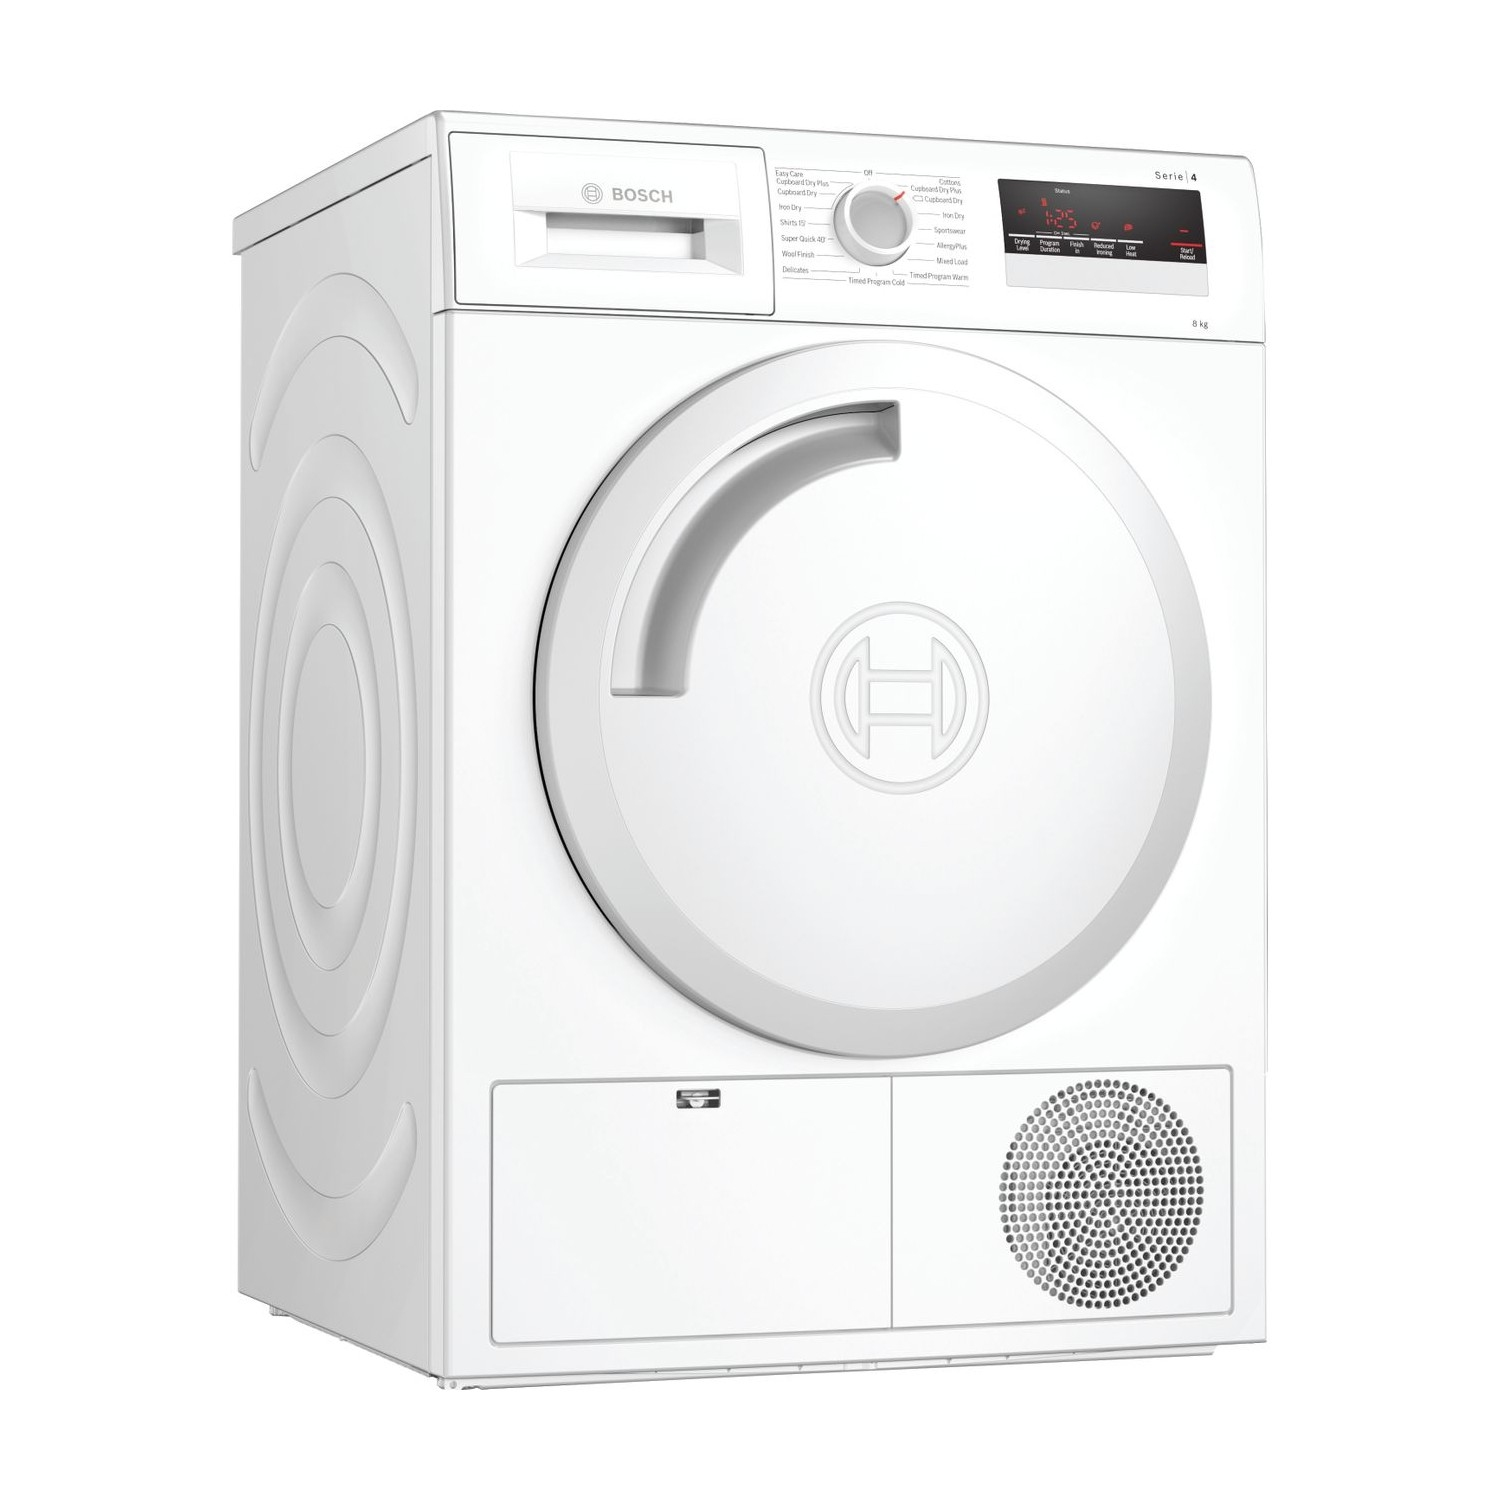 Bosch 8kg Condenser Tumble Dryer - White  - 0